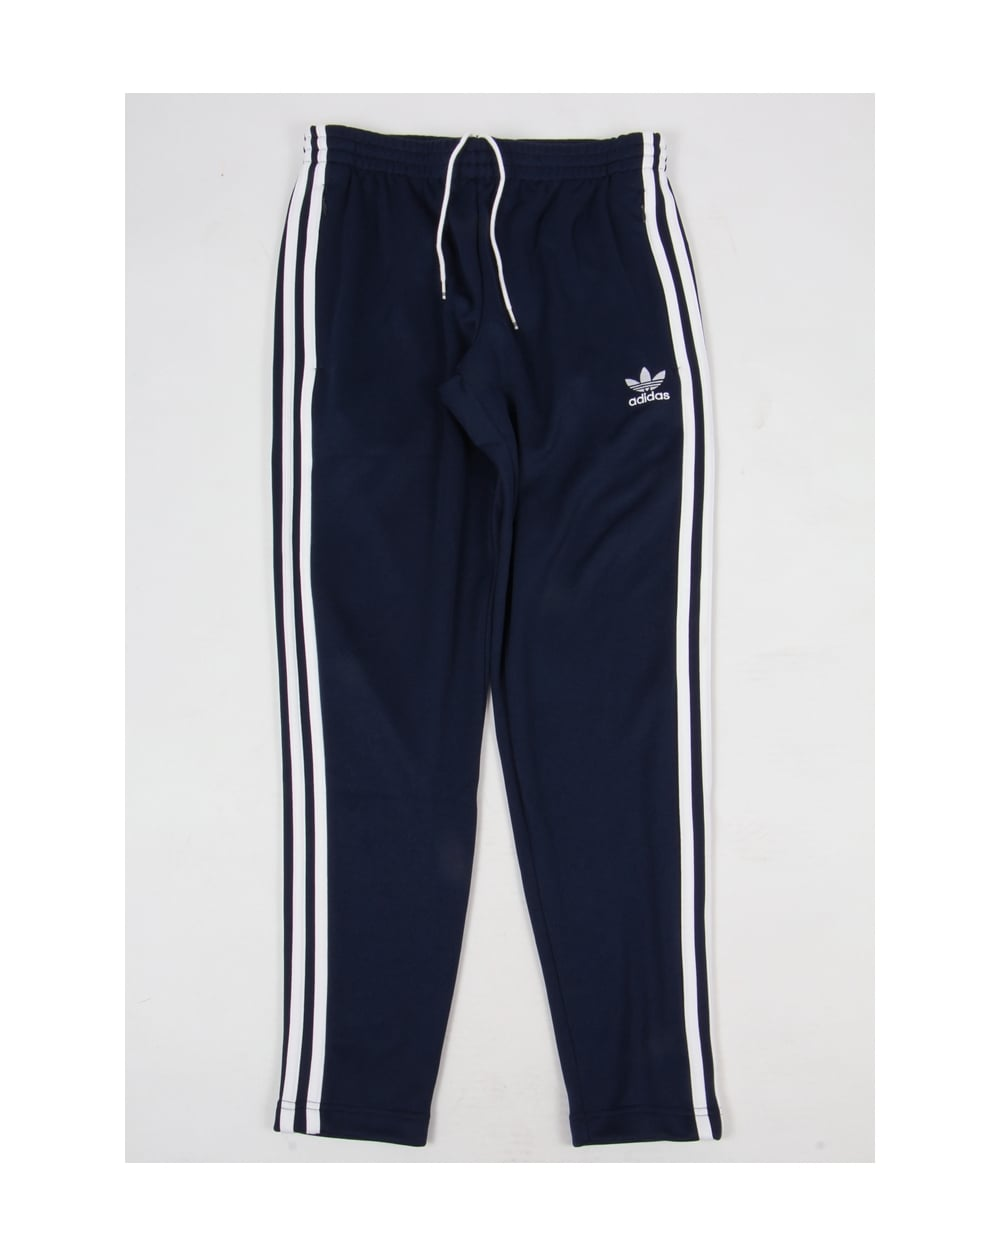 adidas originals superstar open hem track bottoms navy white originals superstar track pants. Black Bedroom Furniture Sets. Home Design Ideas